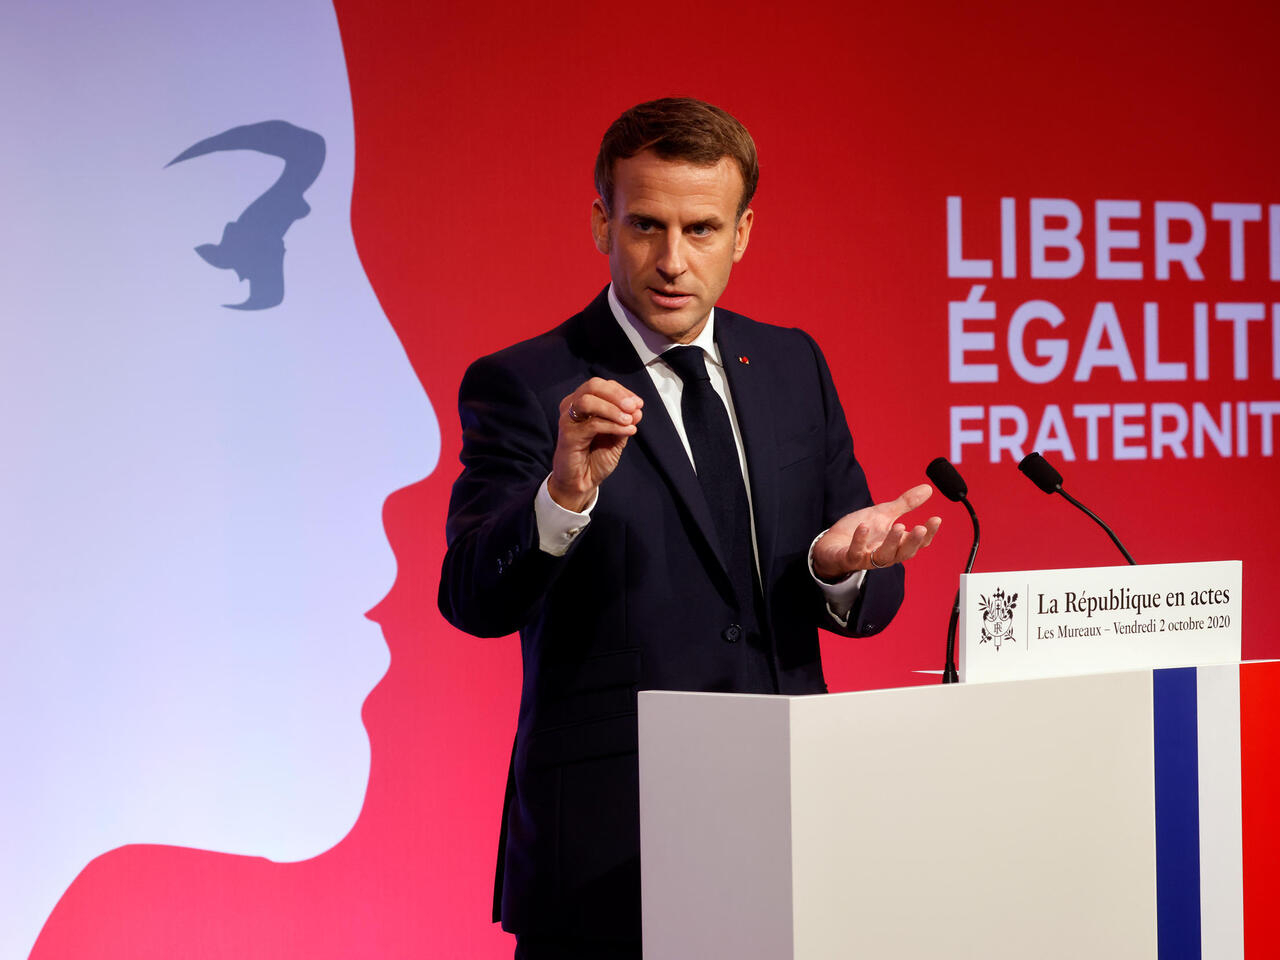 Macron outlines plan to fight 'Islamist separatism' in France announcing anti-separatism bill